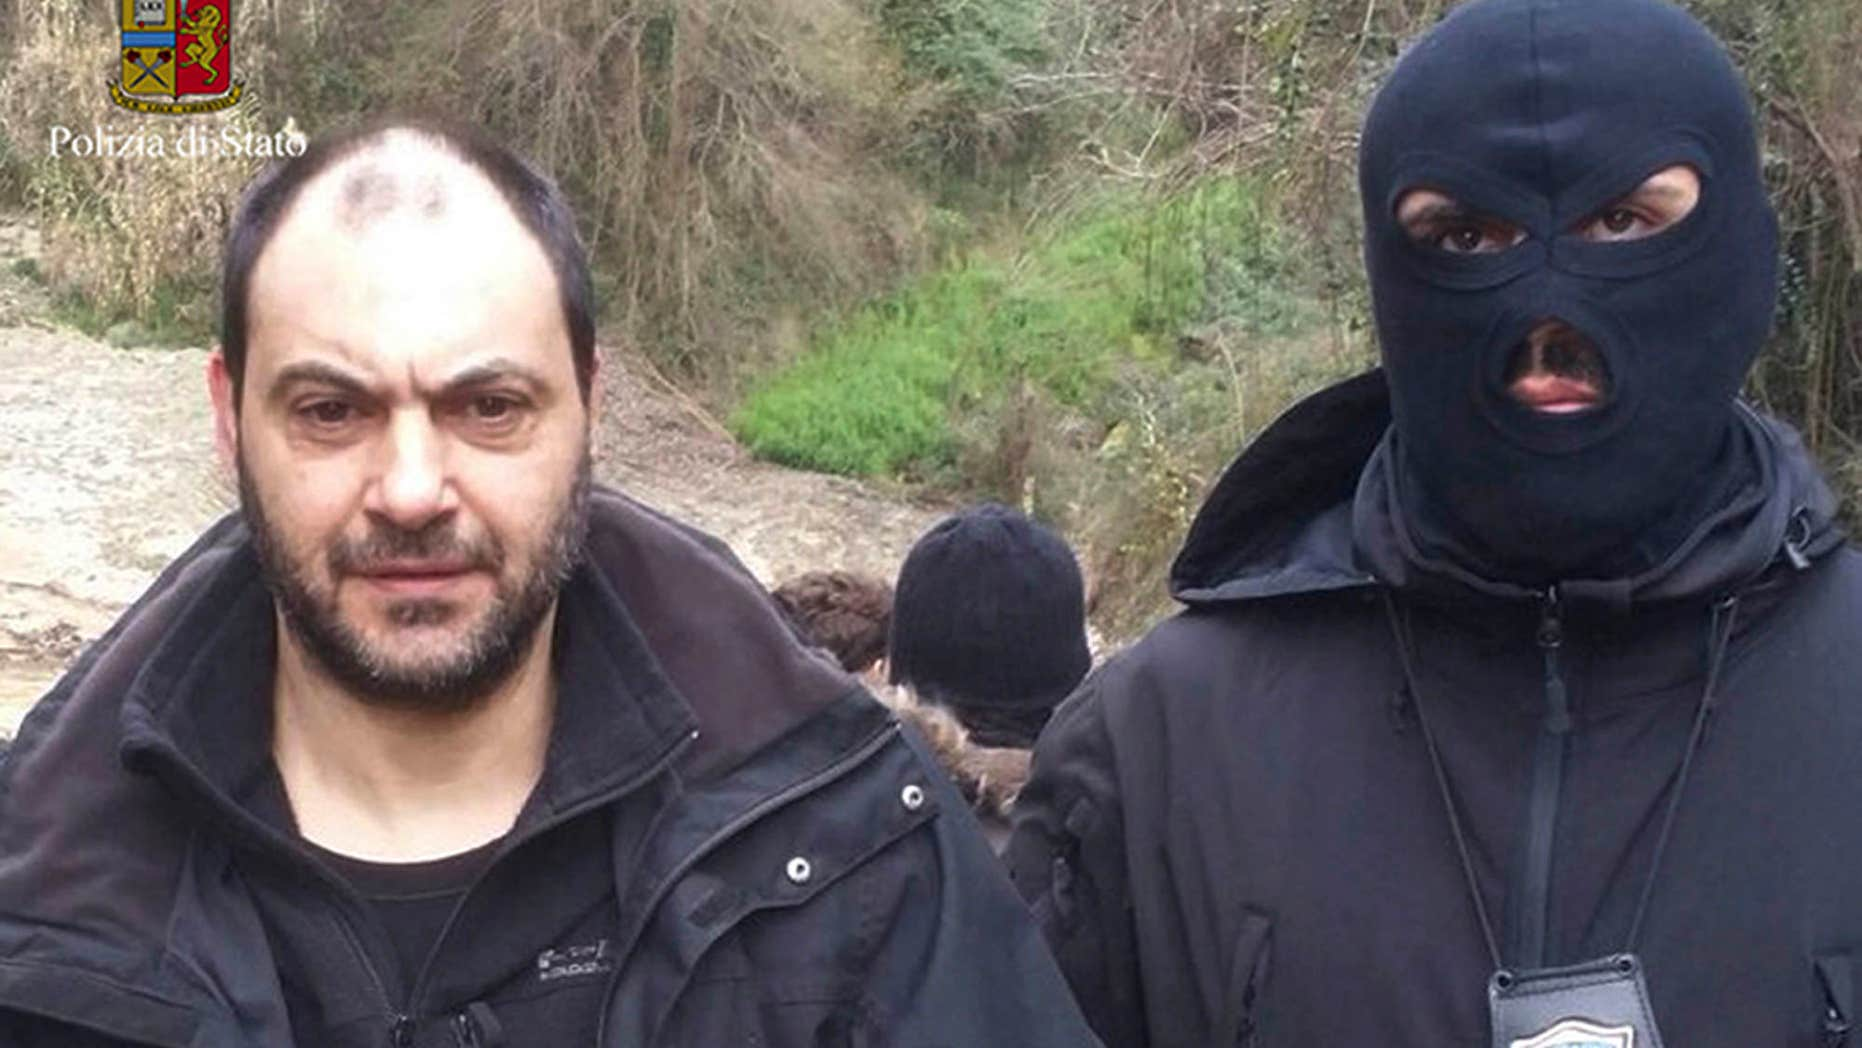 In this photo released by the Italian Police Friday, Jan. 29, 2016, Giuseppe Ferraro is taken into custody after he was arrested in a bunker.